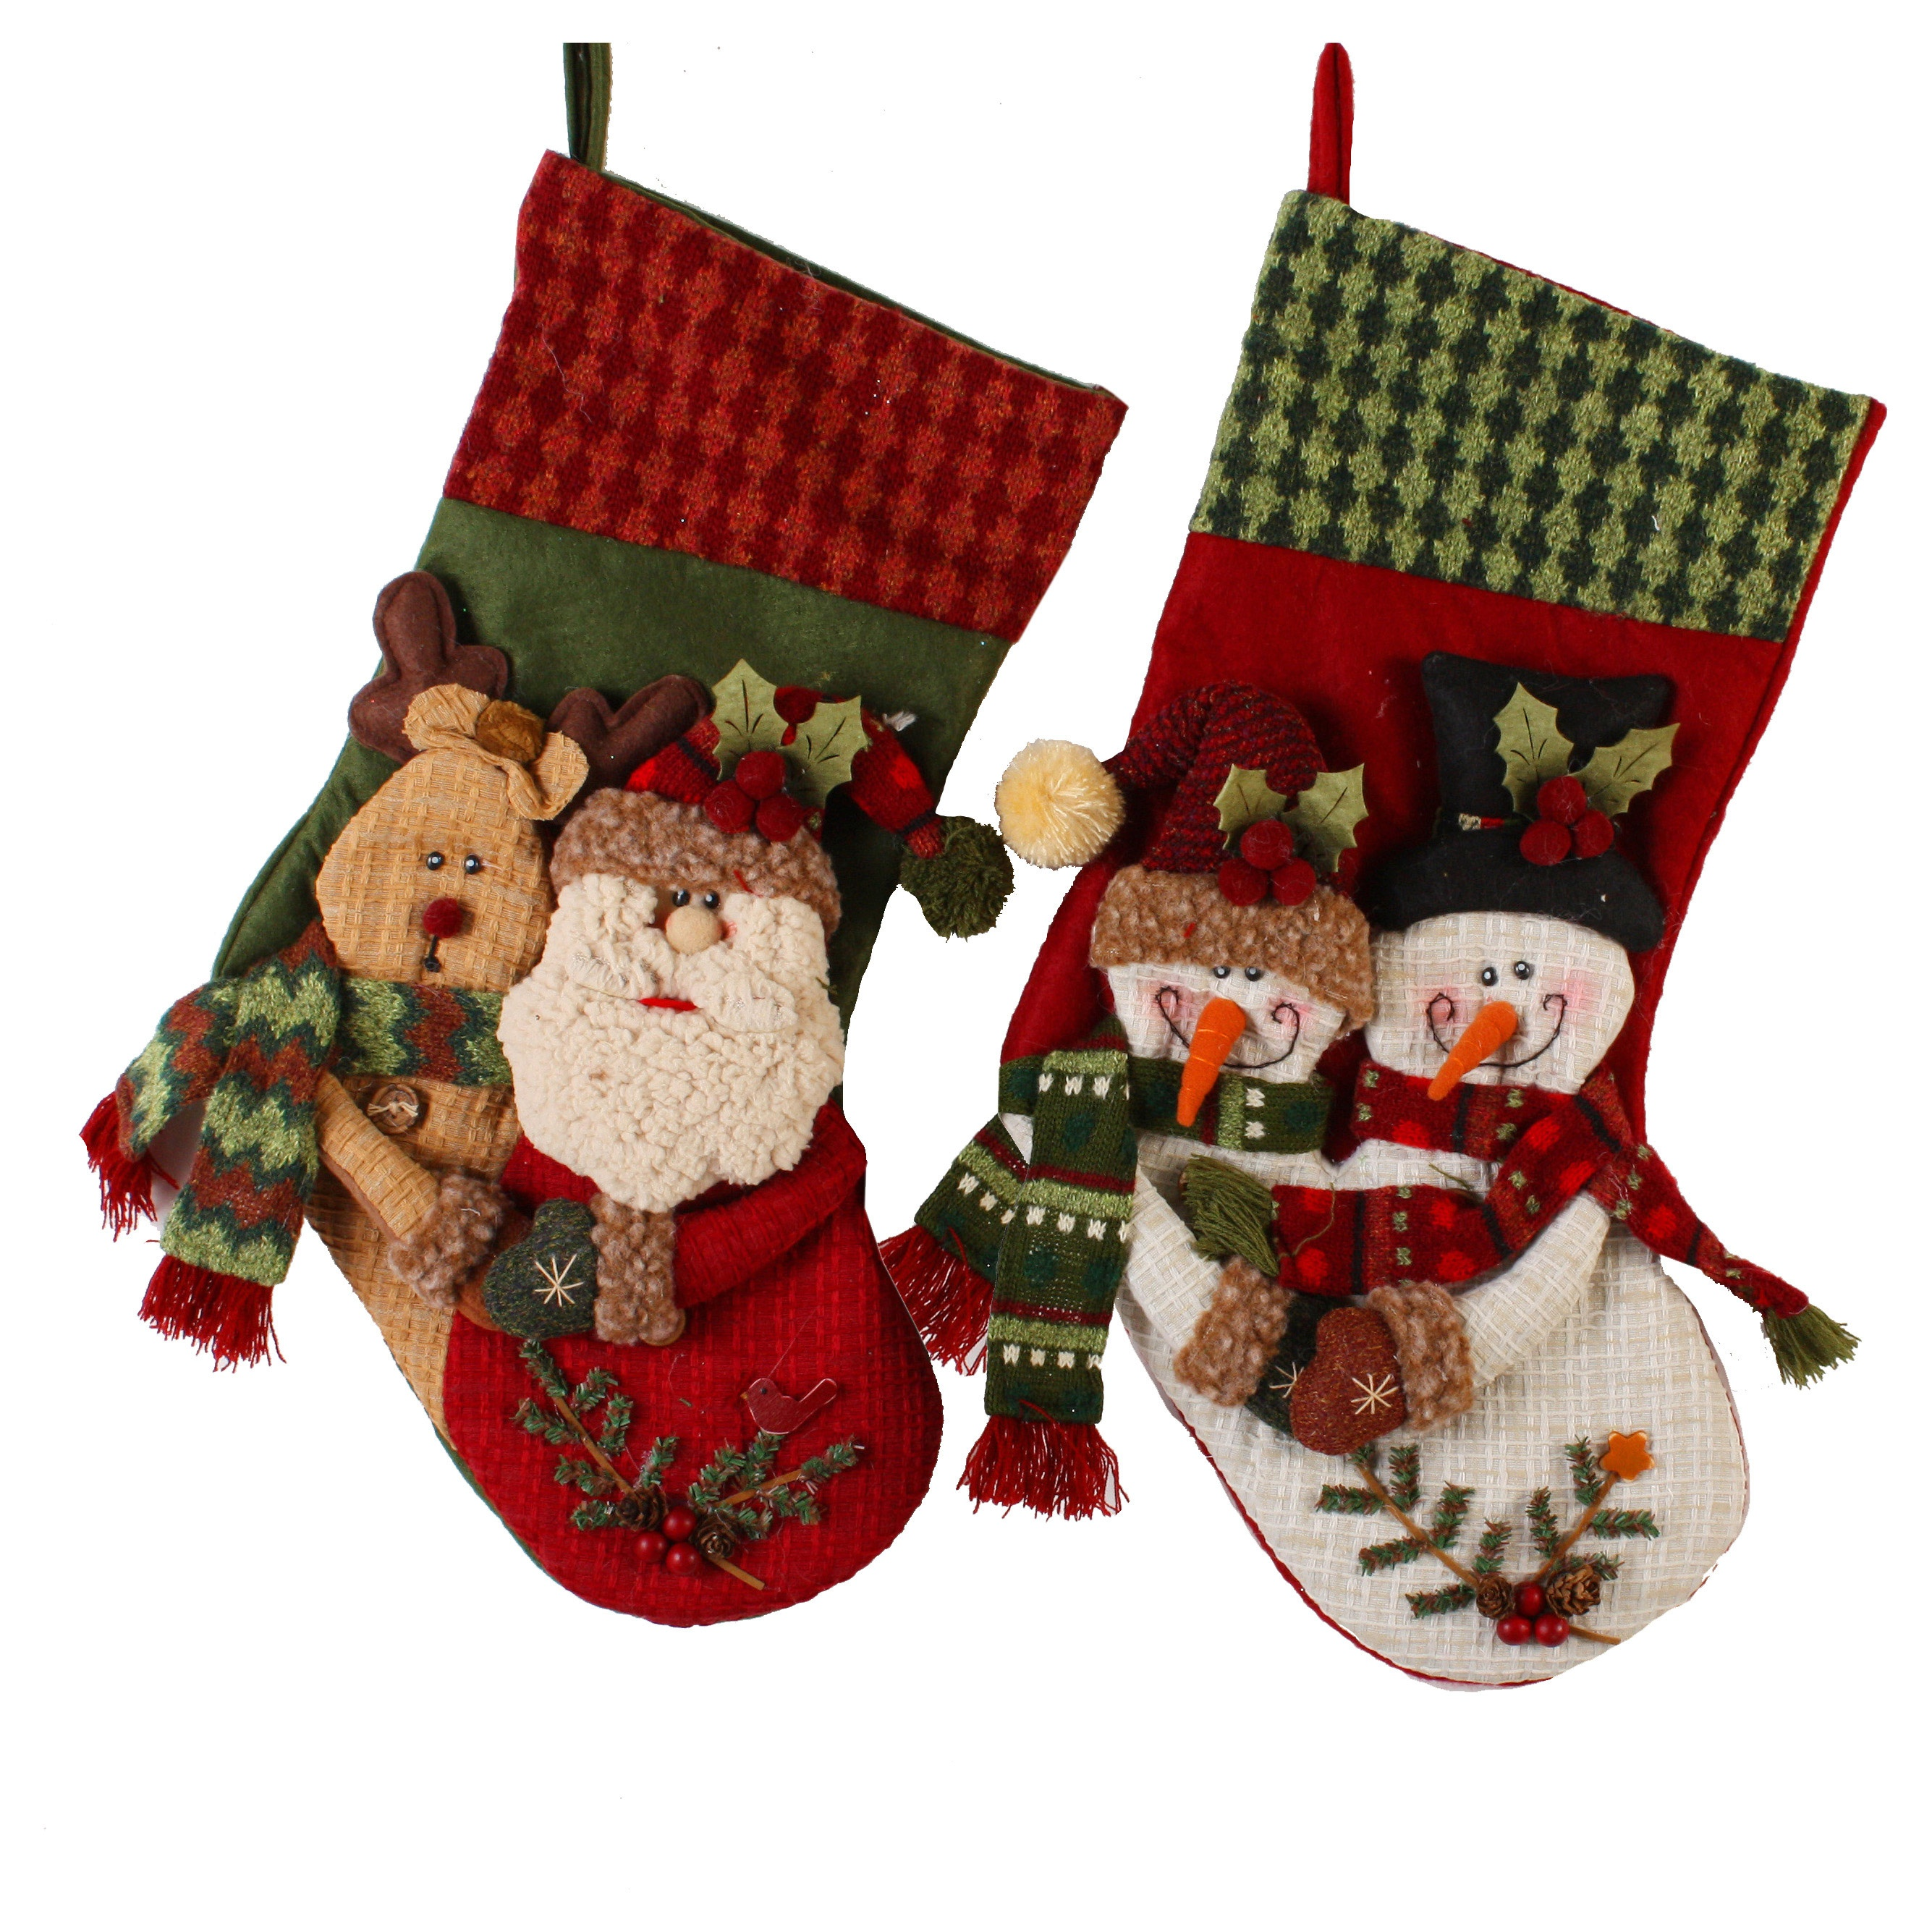 http://cdn.christmaslightsetc.com/images/ProductCloseup/22814/snowman-Christmas-stockings.jpg